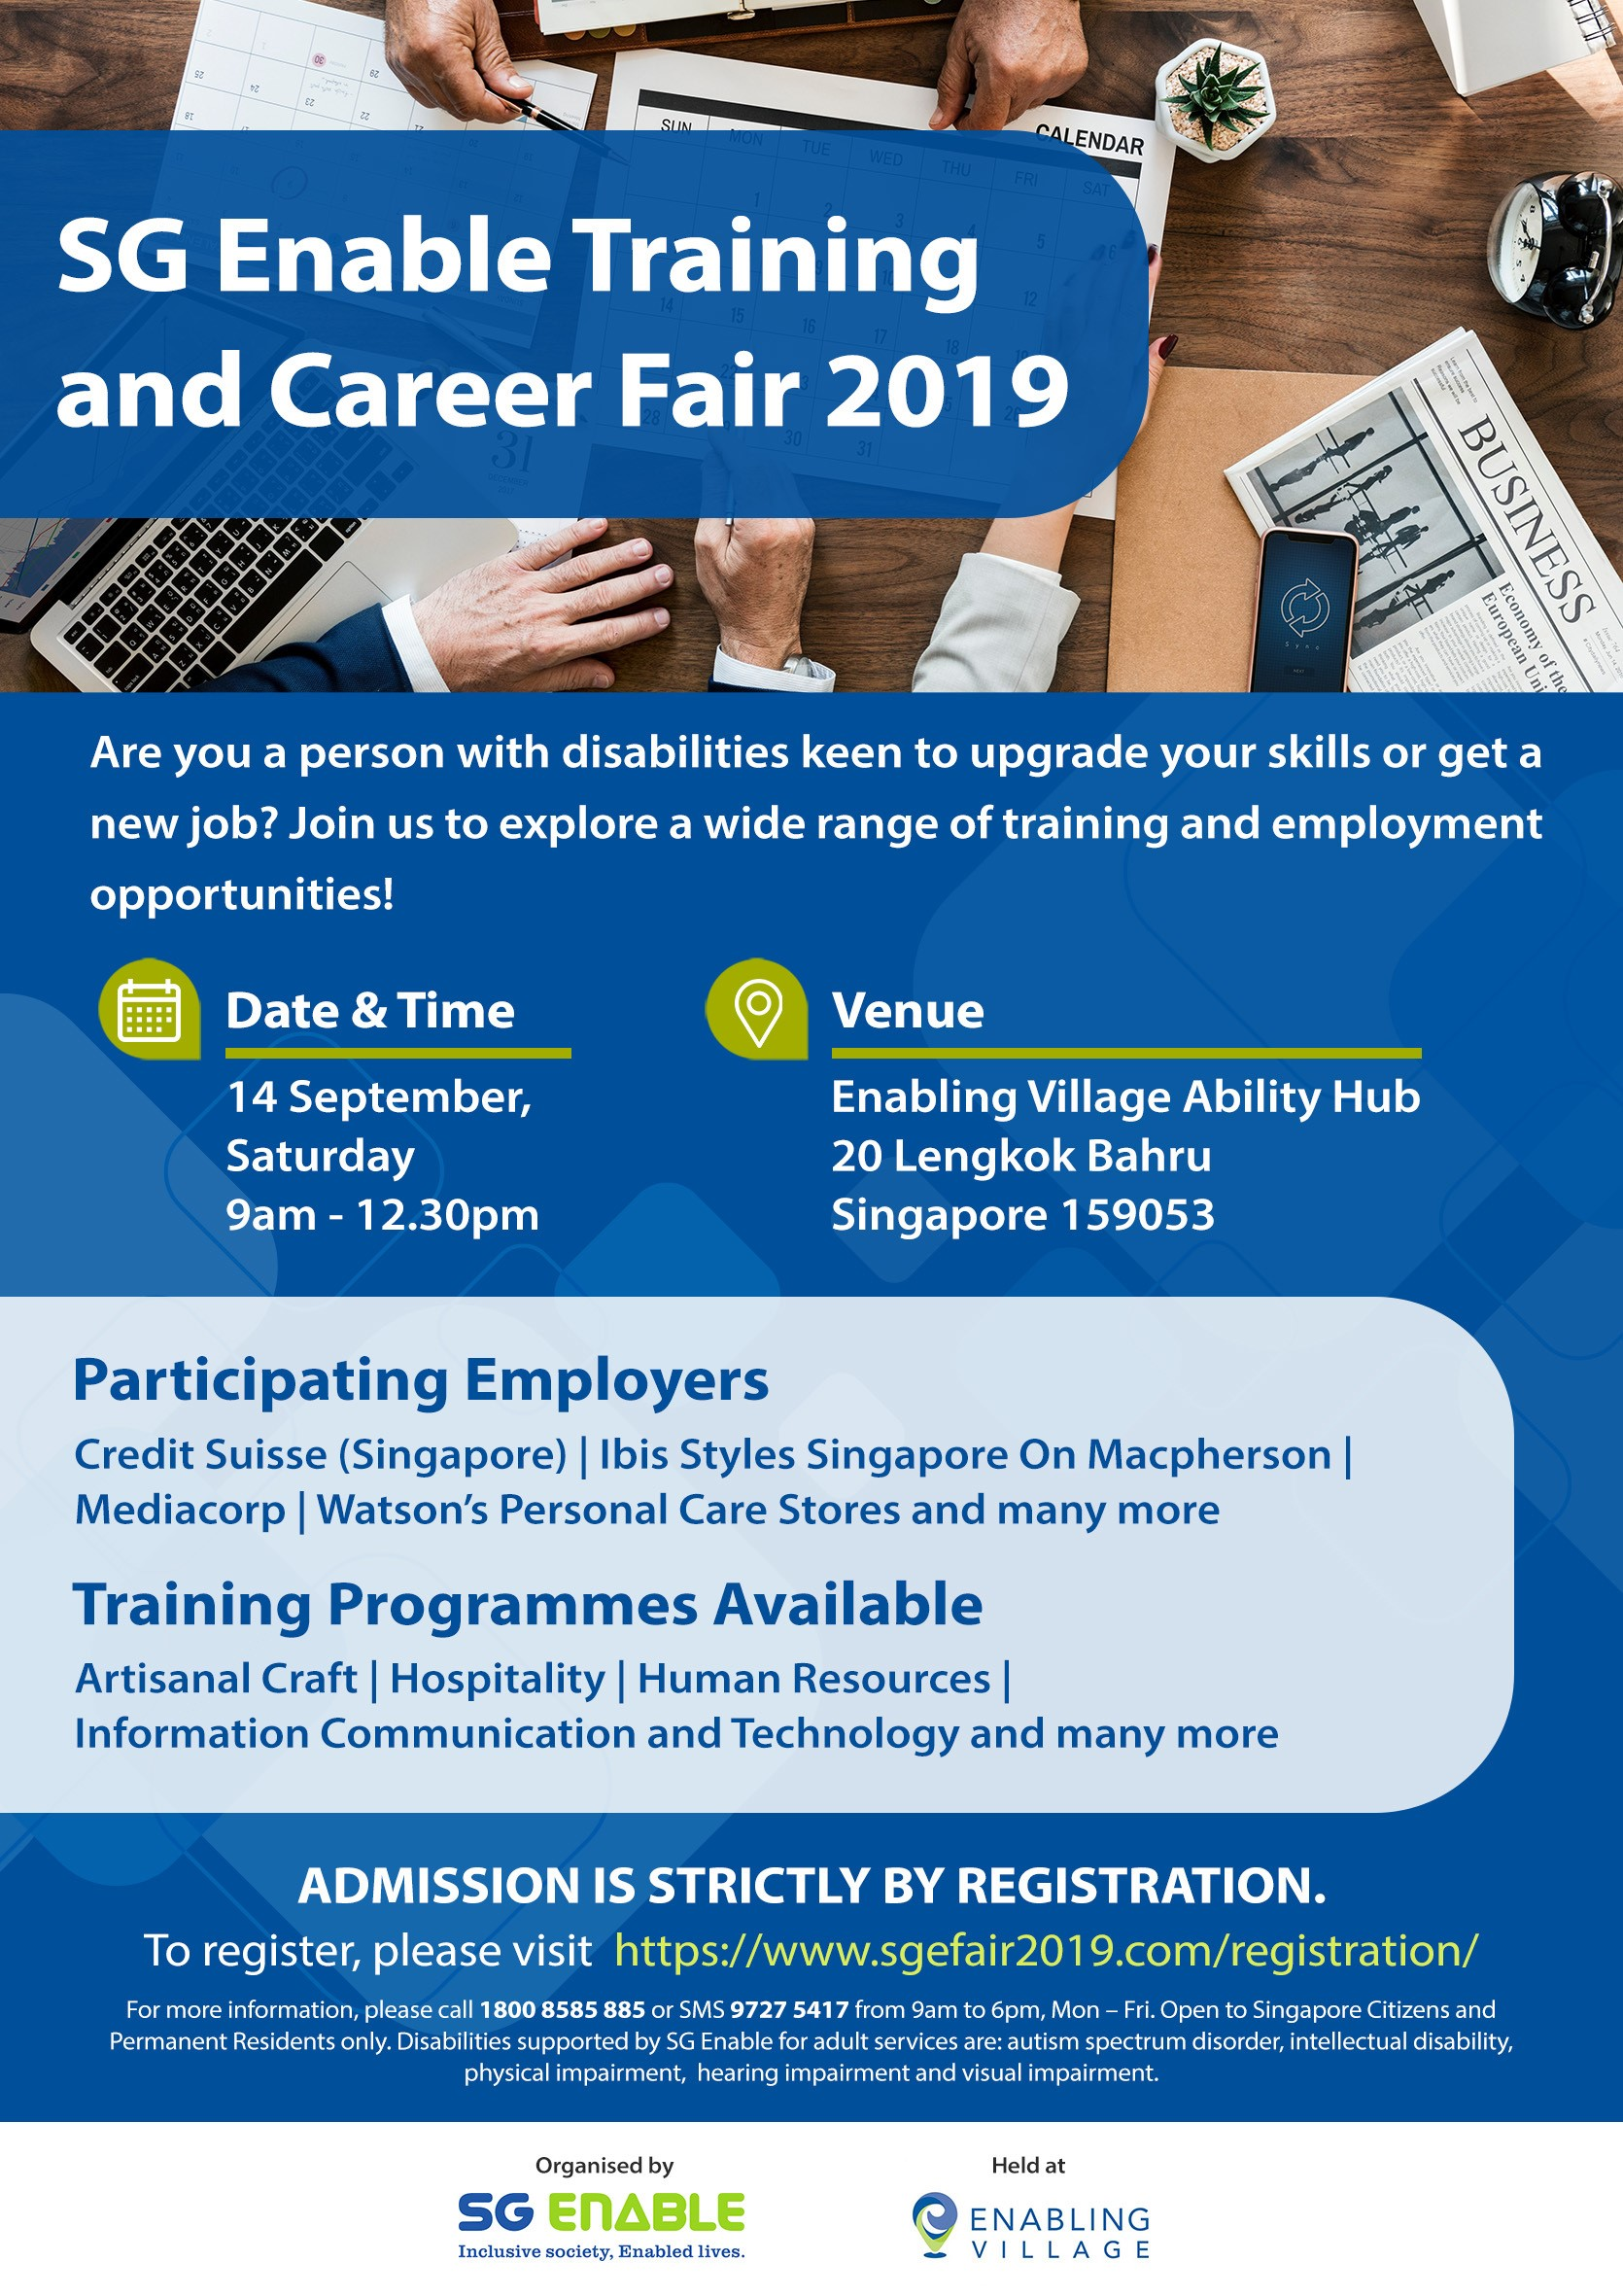 SG Enable Training And Career Fair 2019